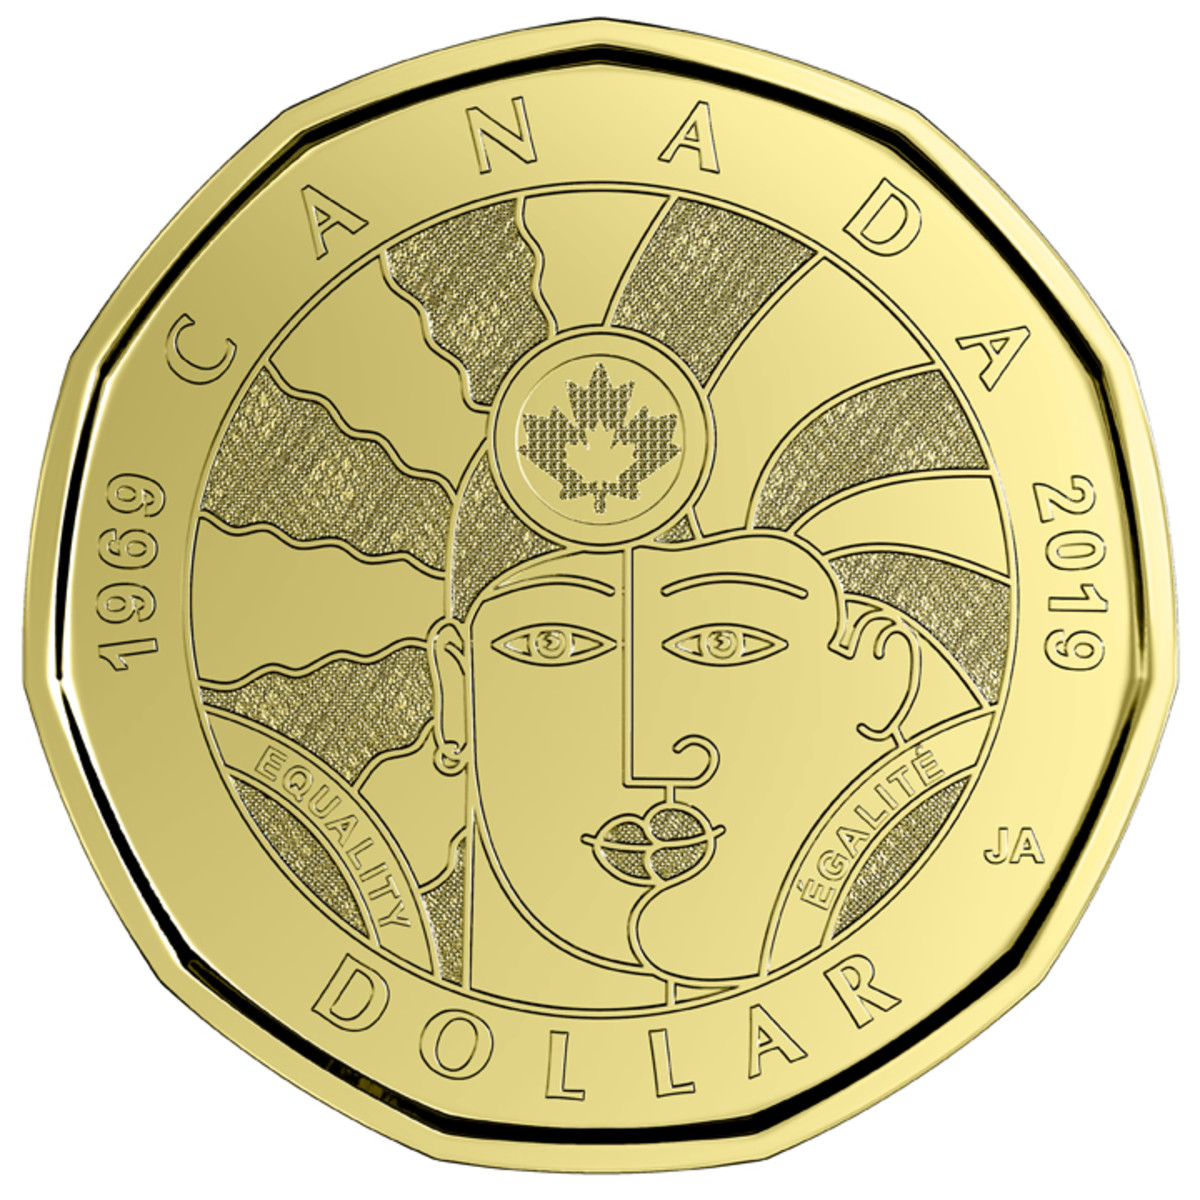 Joe Average's design for the reverse of Canada's new Equality dollar that marks 50 years of recognizing the rights of LGBTQ2 Canadians. The image of two intertwined faces reflects gender fluidity and the spectrum of genders. They are left open to interpretation. They may belong to two individuals or they may represent different aspects of a single person's identity. (Image courtesy Royal Canadian Mint.)